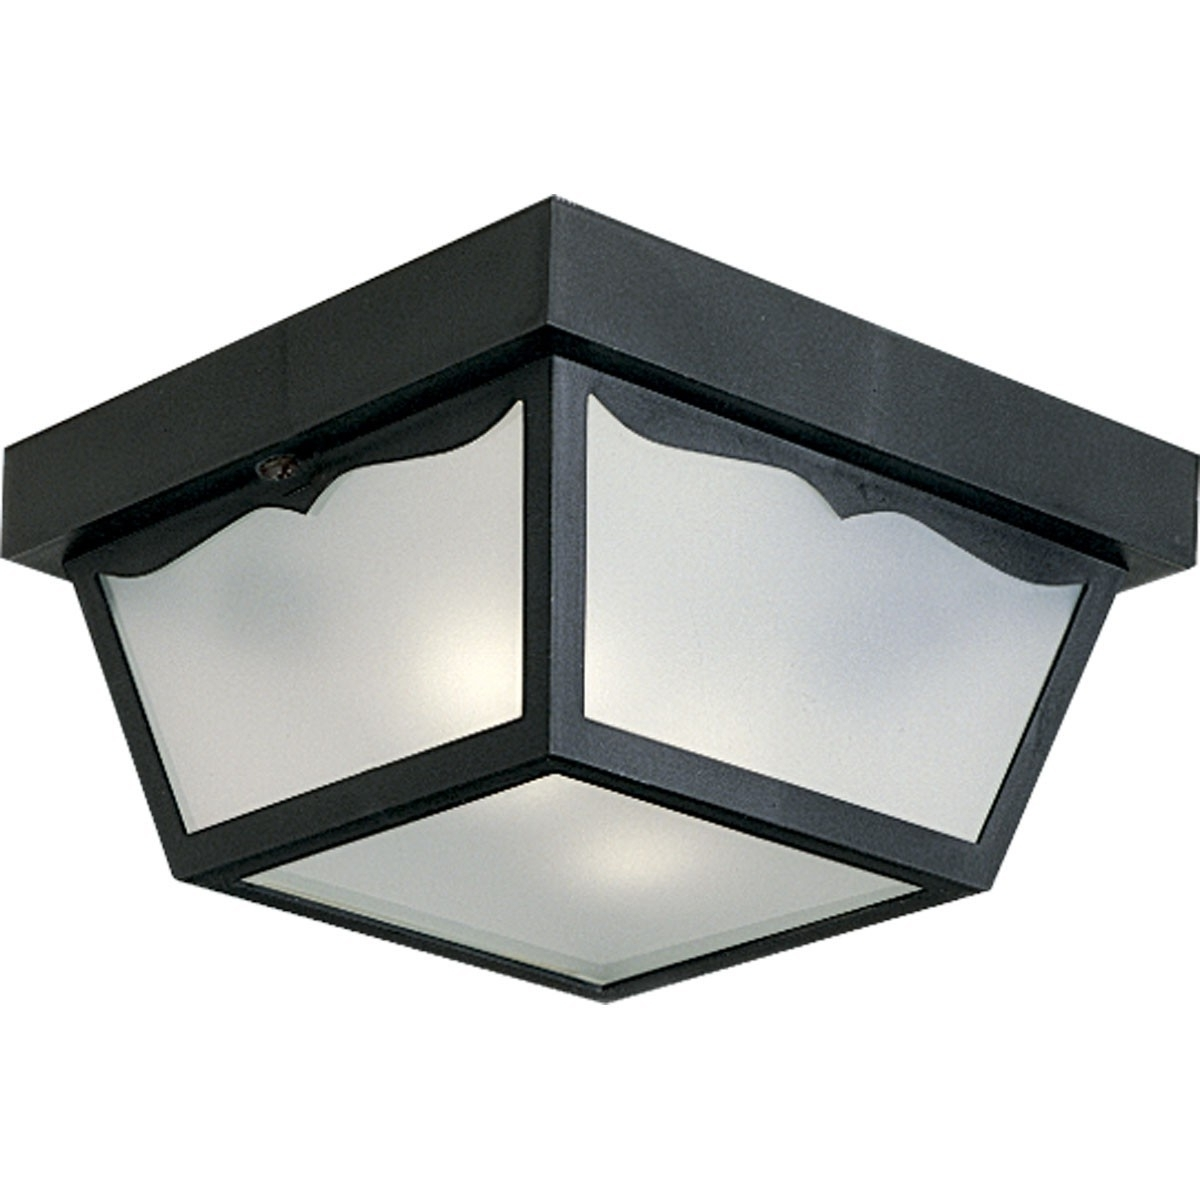 Preferred Mount Flush Bathroom Ceiling Lights Overhead Popular Outdoor Popular For Round Outdoor Ceiling Lights (View 6 of 20)